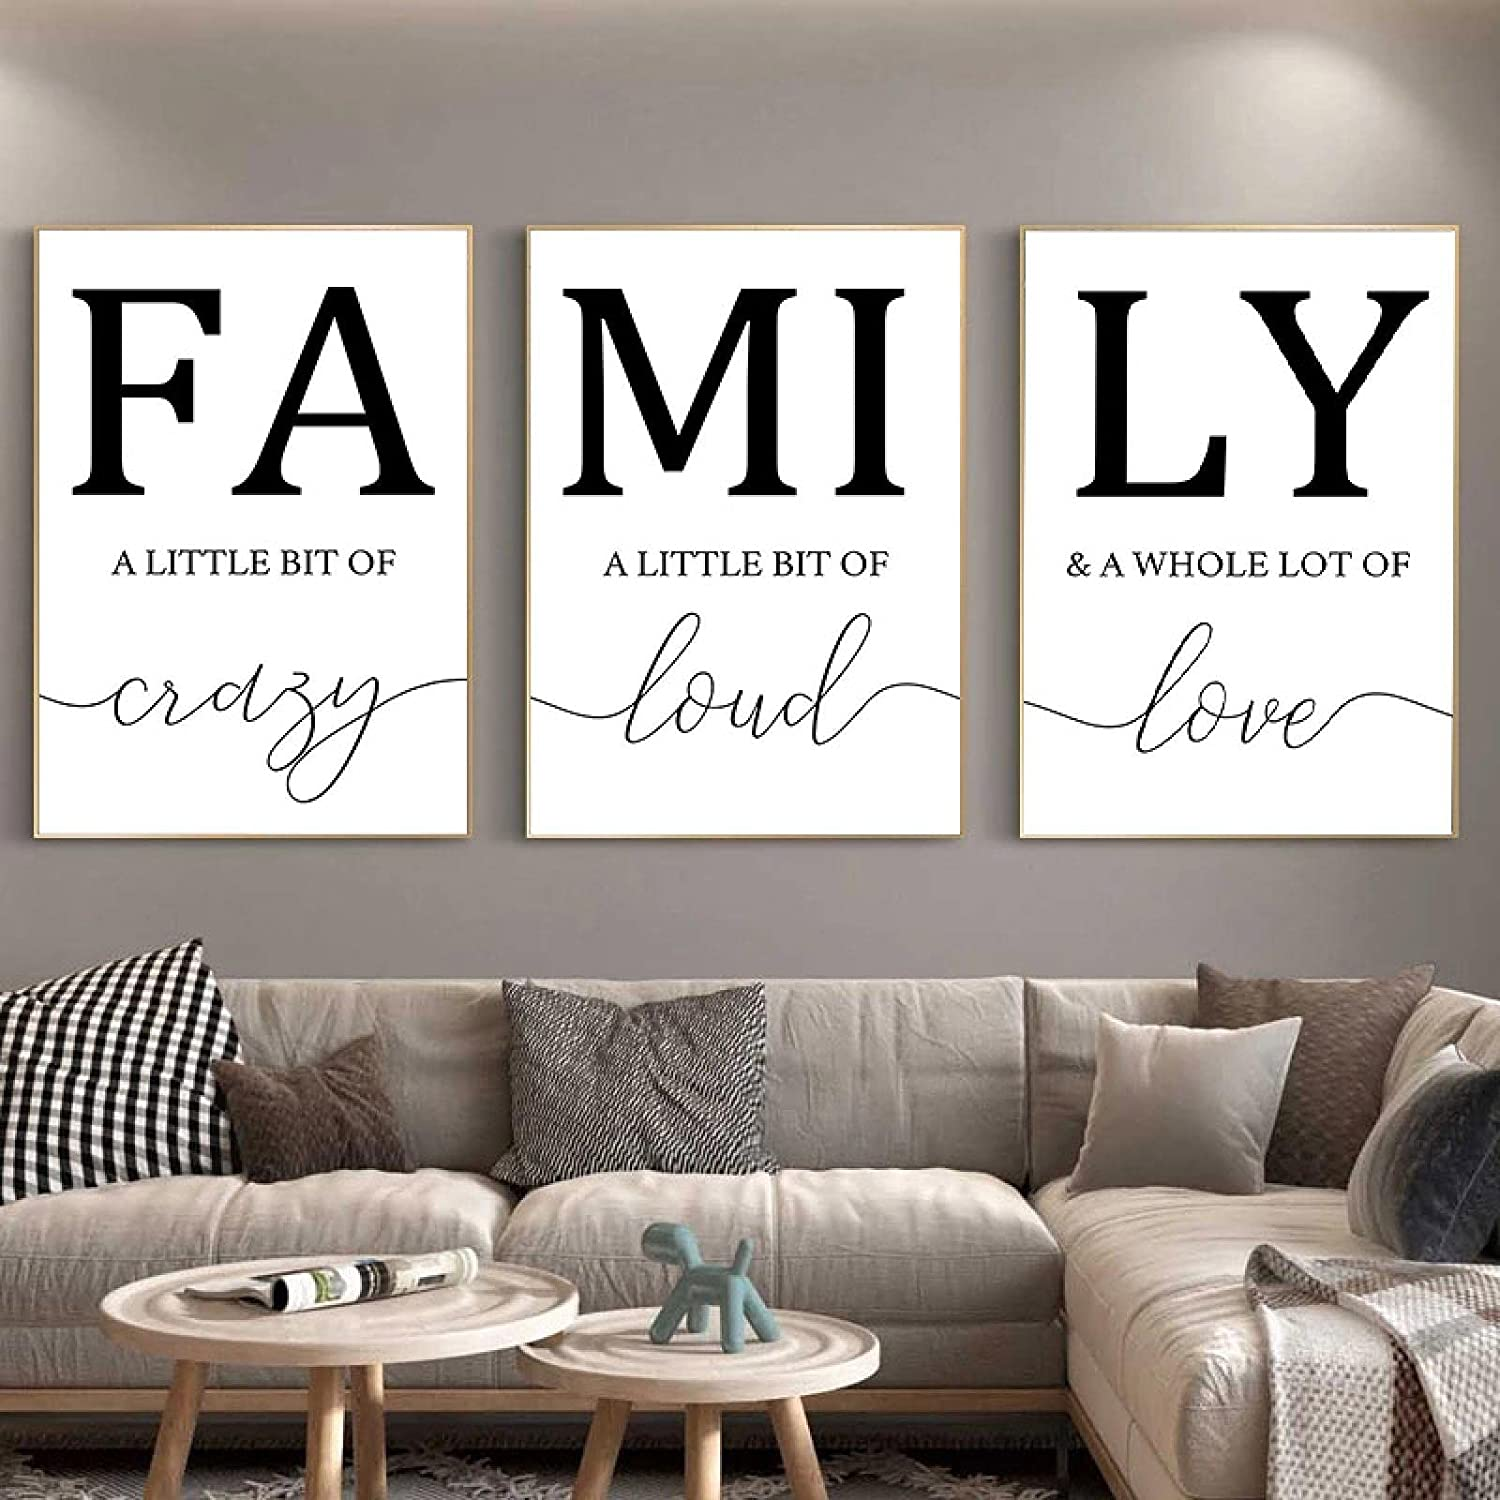 Sunsightly NEW before Cheap sale selling Print on Canvas Nordic Letter Minimalist Love Family